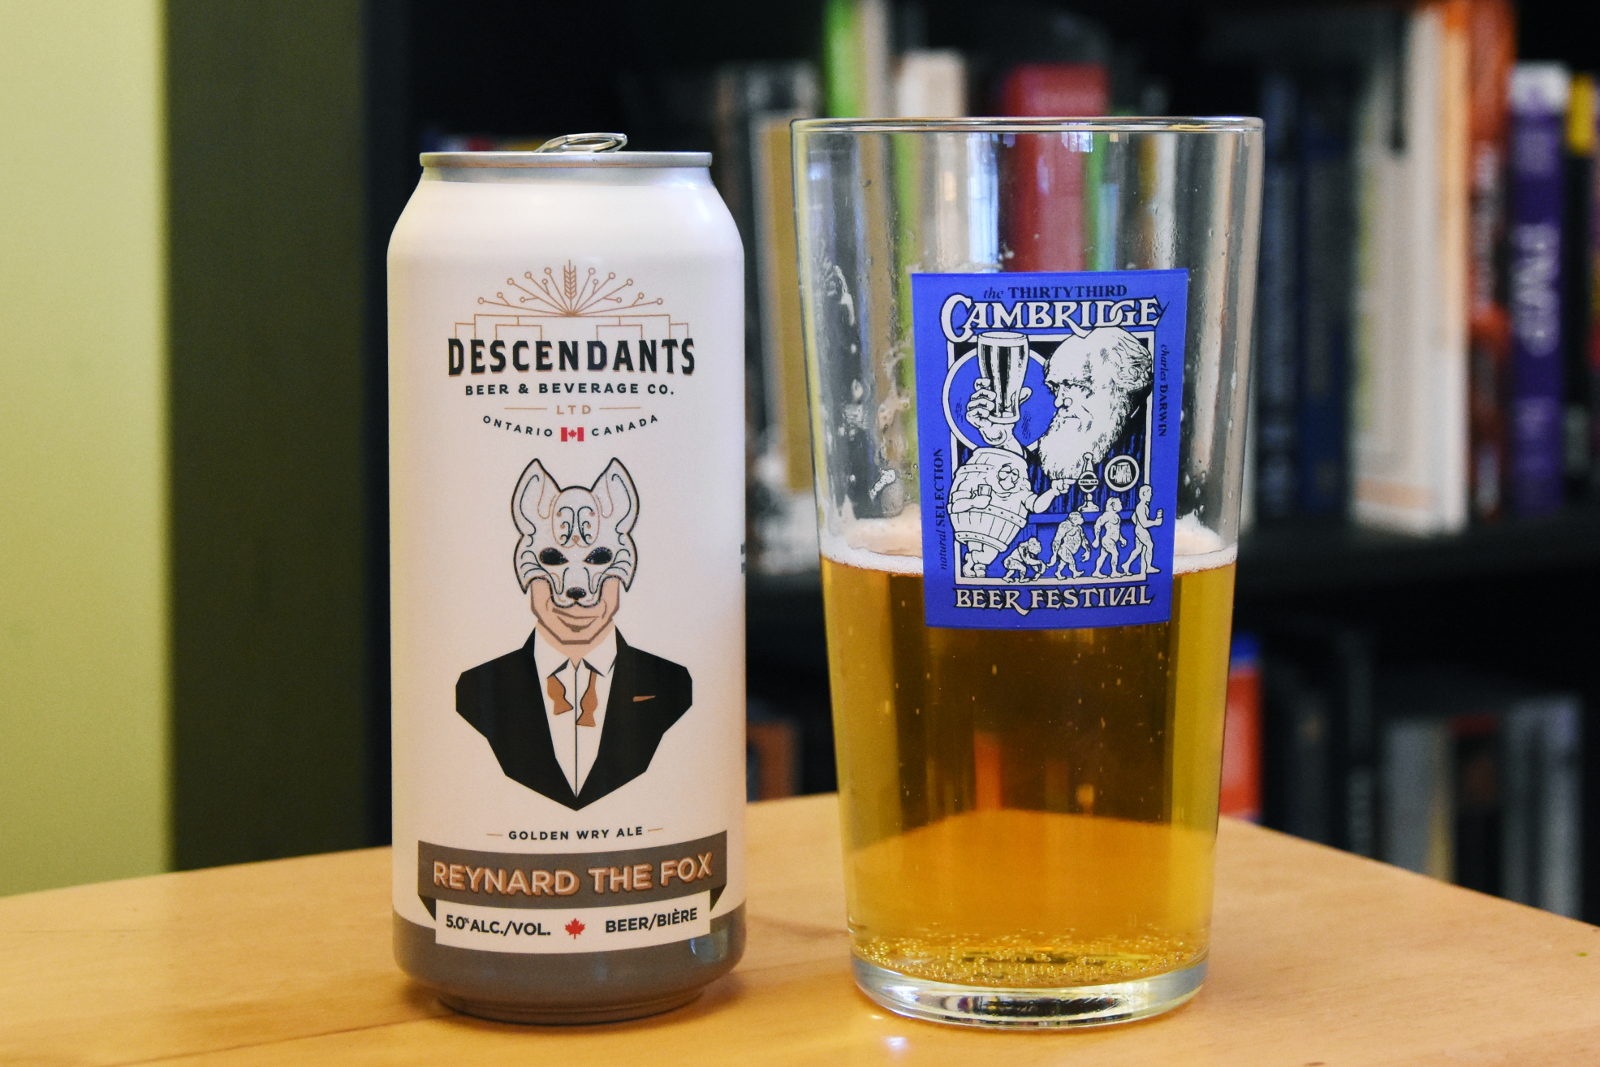 Descendants Wry Ale and Cambridge Beer Festival glass